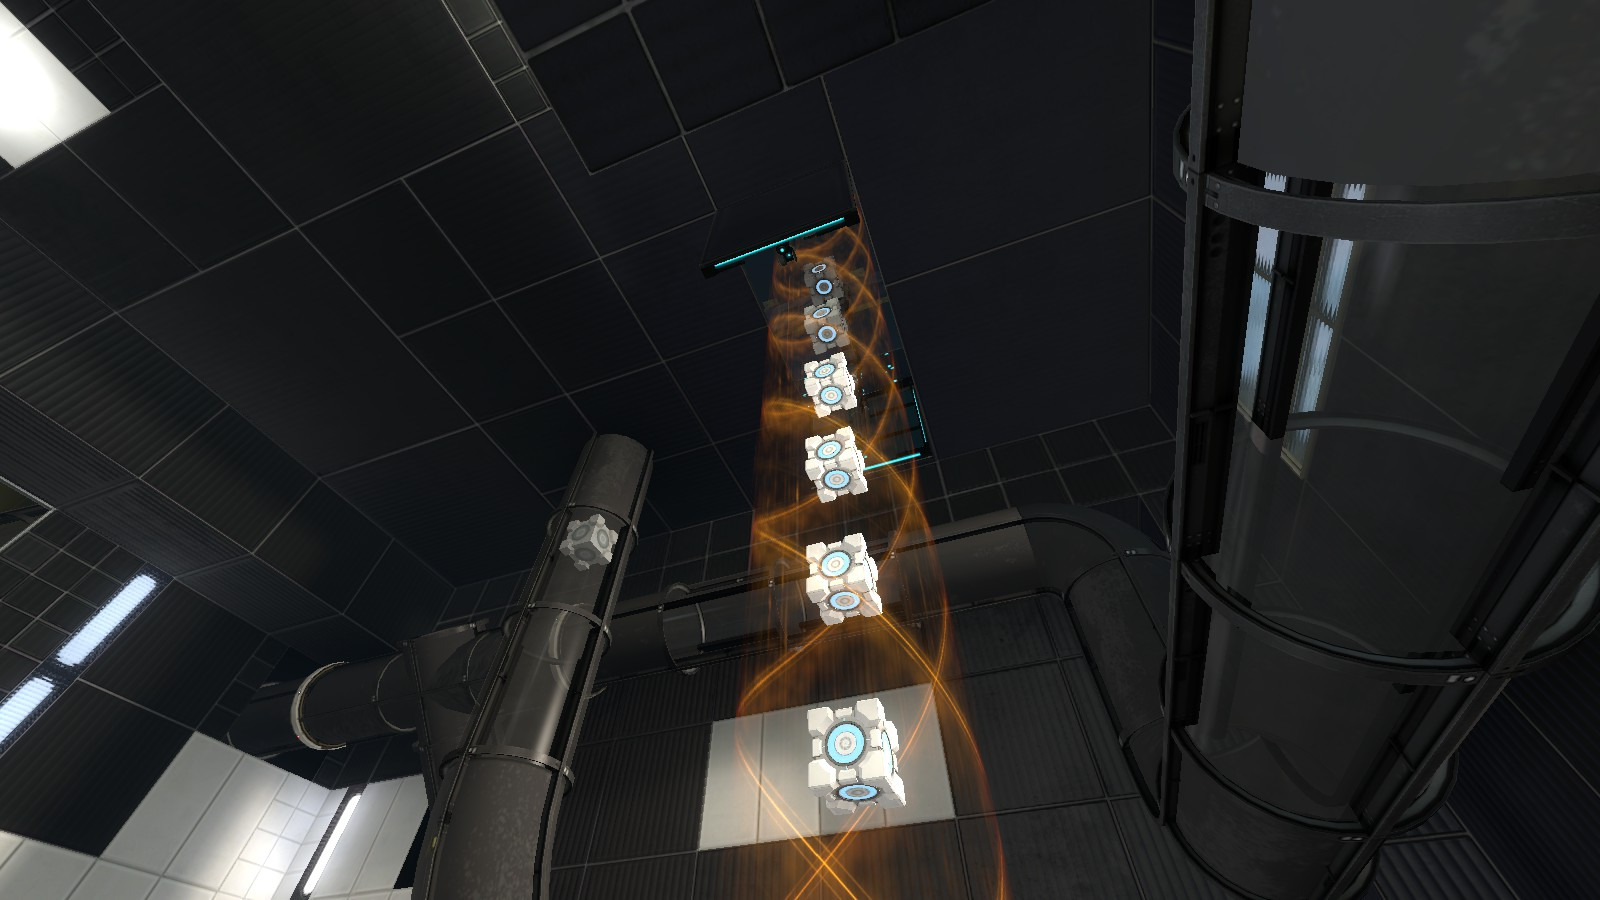 Tractor beam transporting some cubes